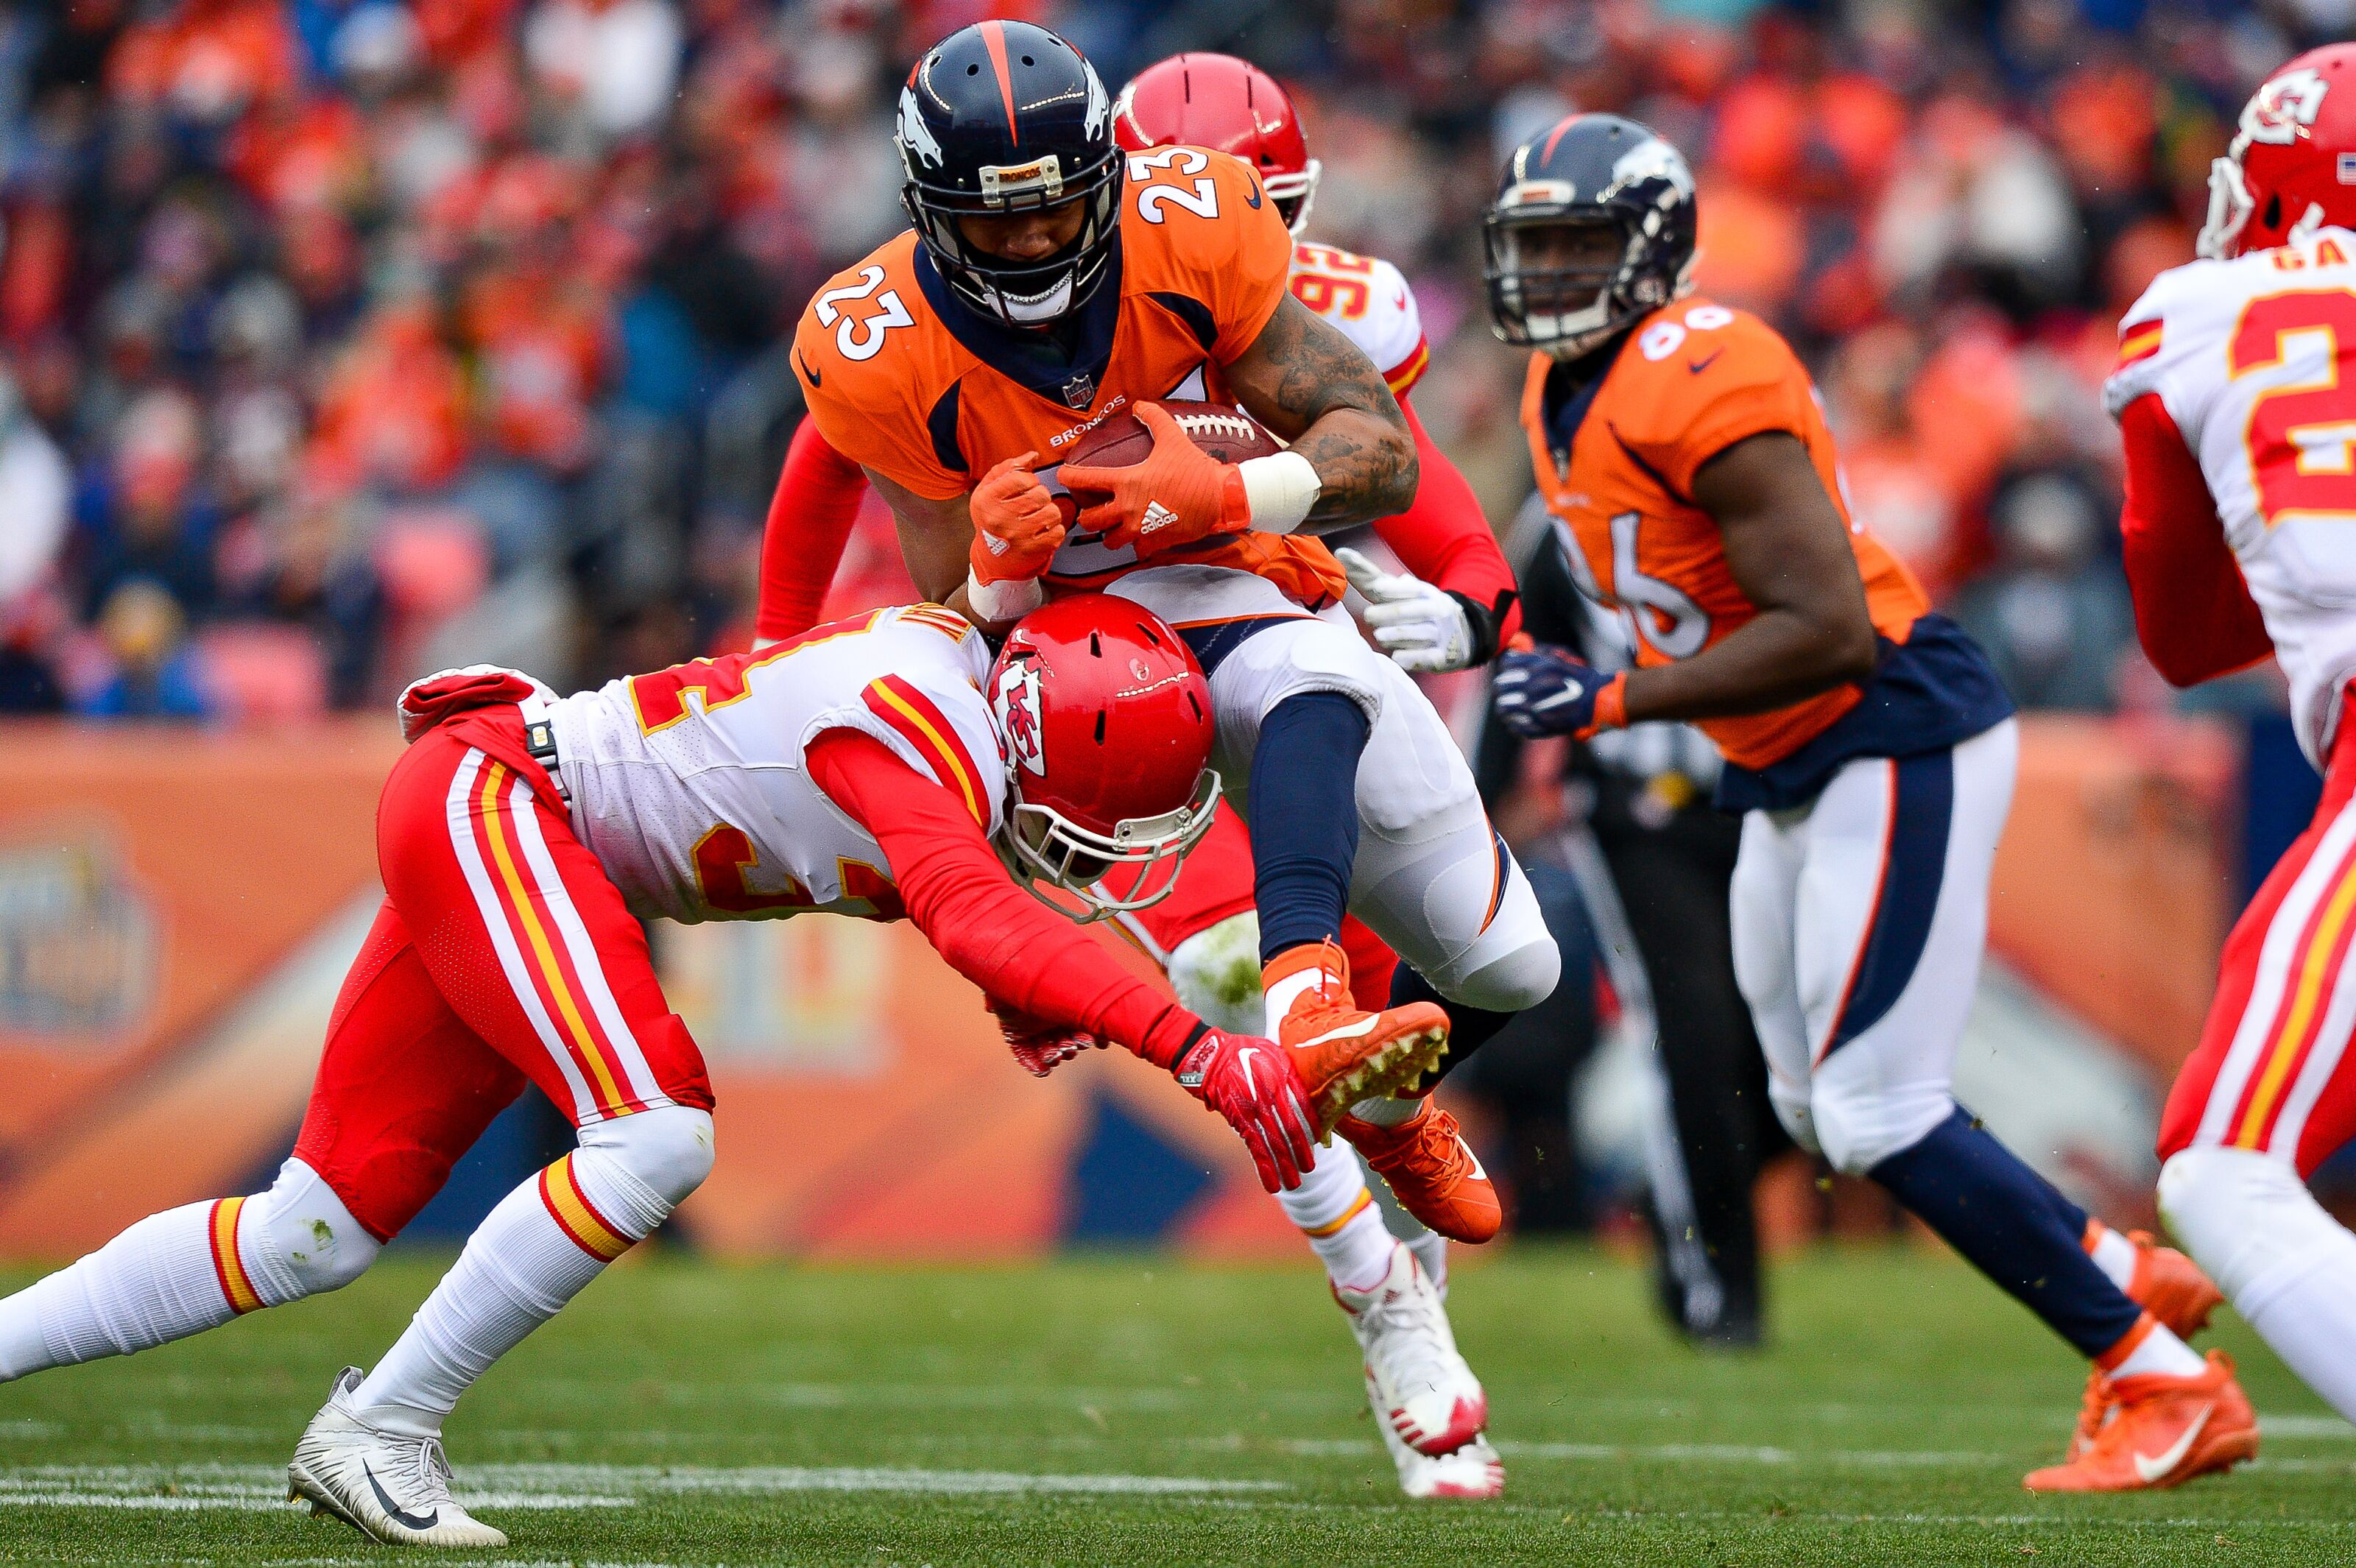 900124538-kansas-city-chiefs-v-denver-broncos.jpg